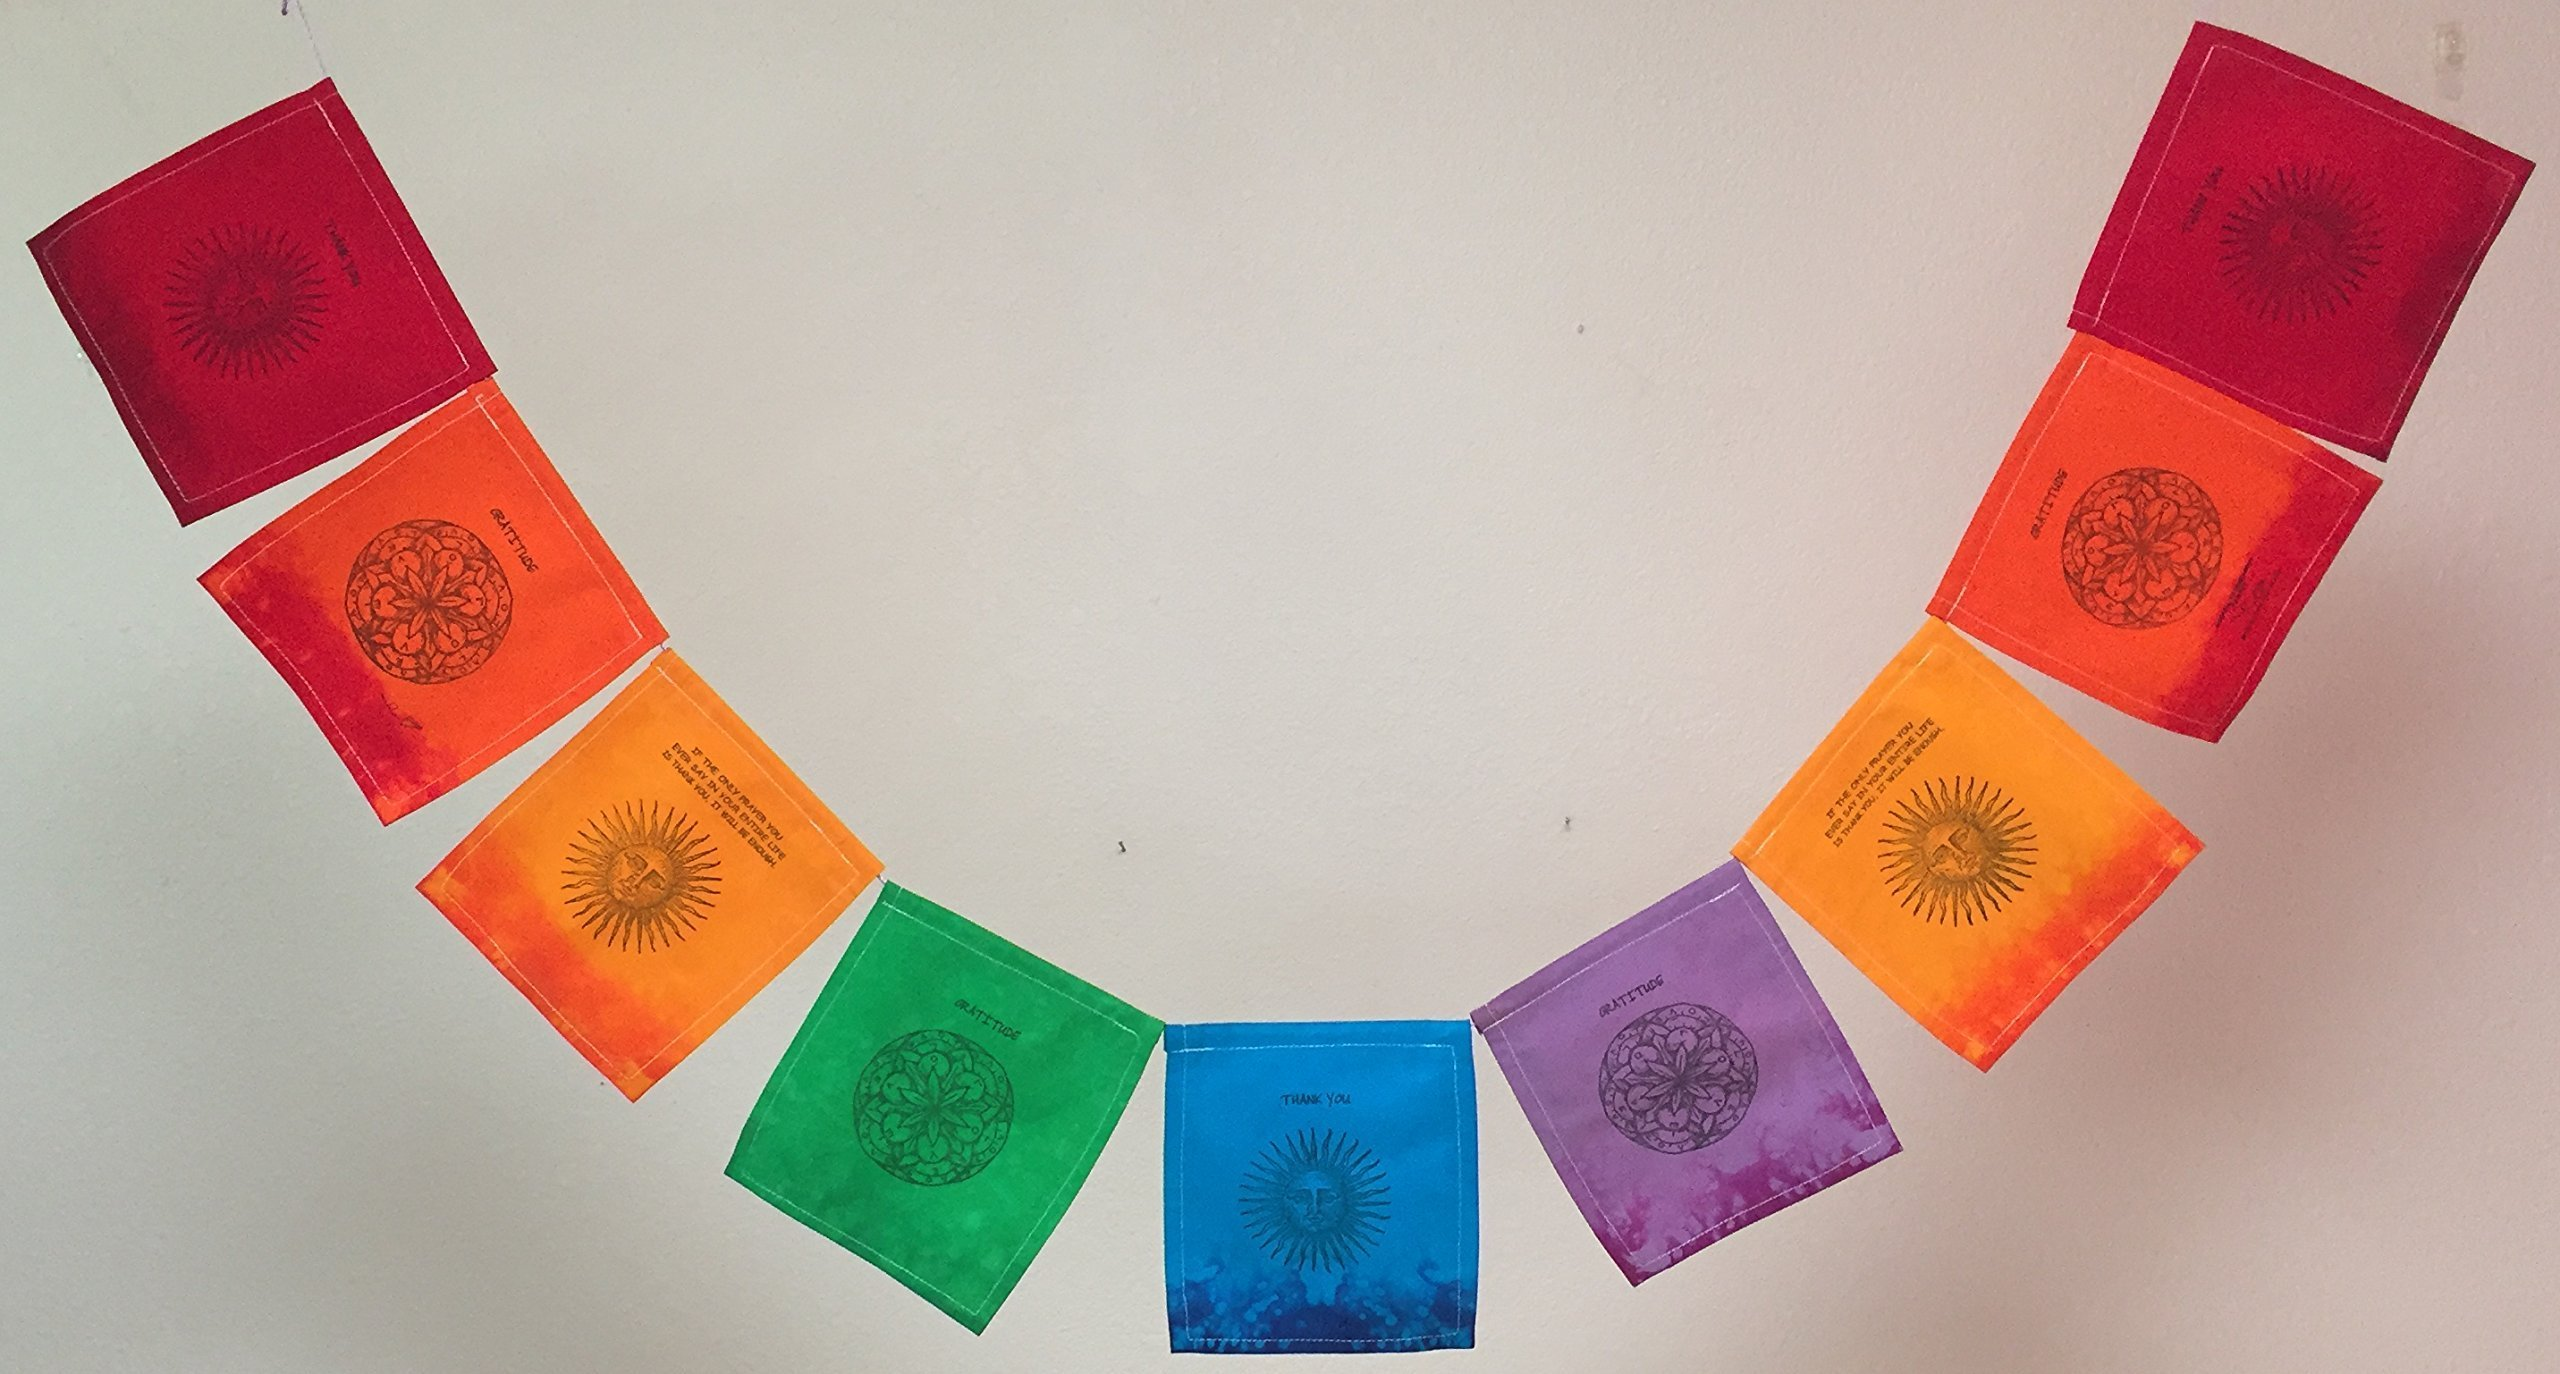 Gratitude,'Thank You' Prayer Flag. All proceeds to families in Mexico. Free domestic shipping.